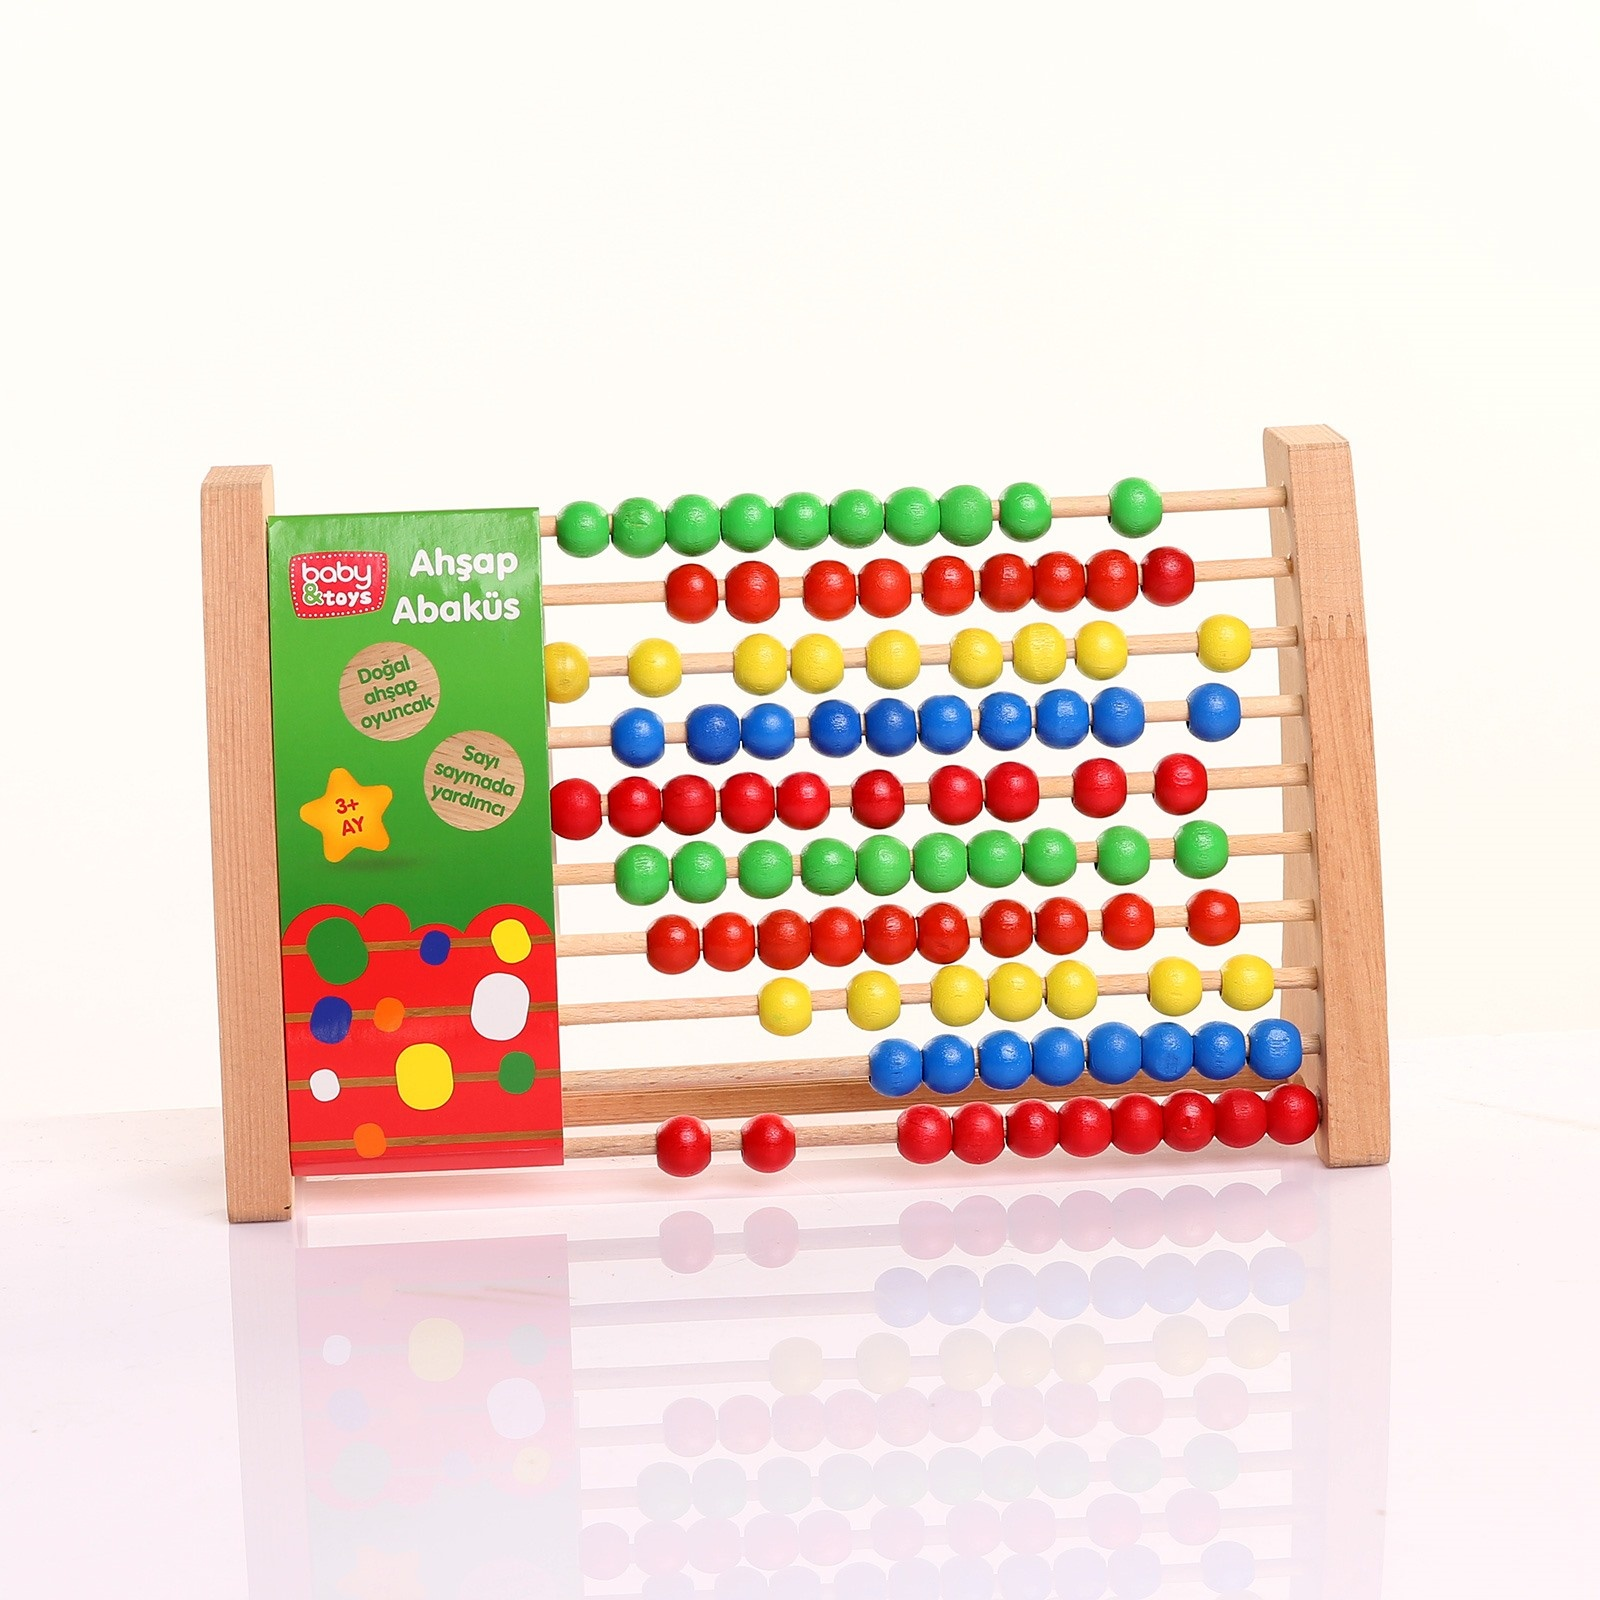 Ebebek Baby&toys Wooden Educational Abacus Counting Toy